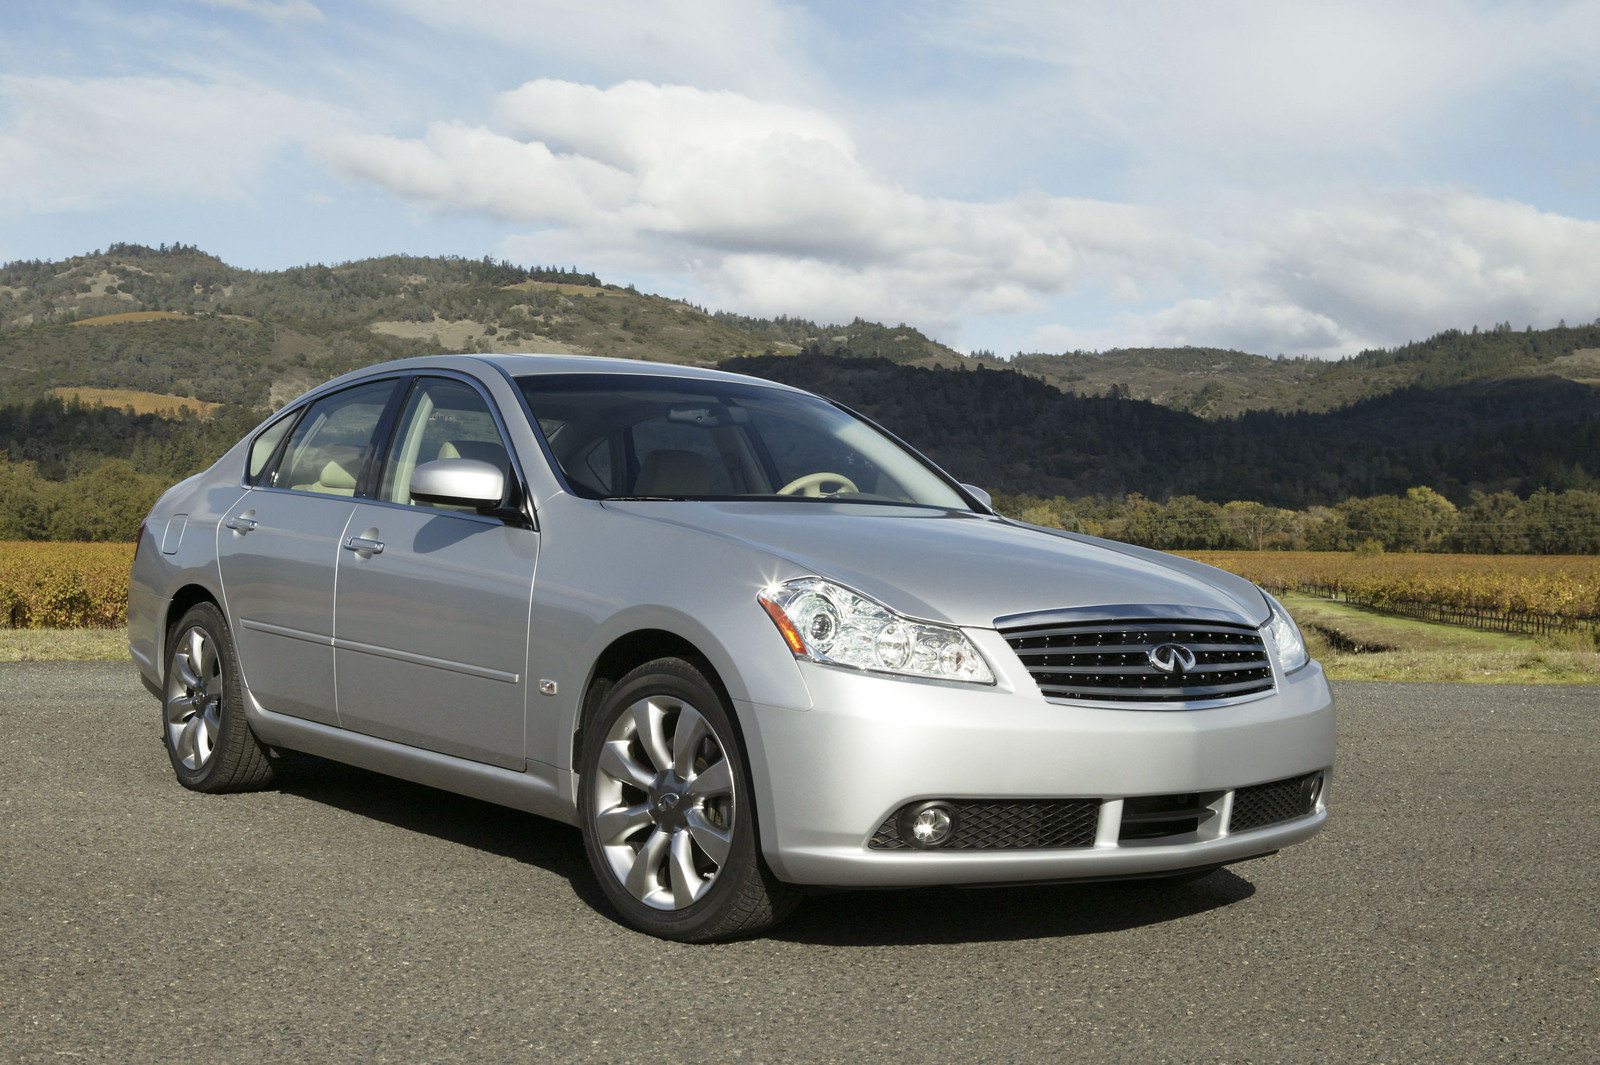 2006 infiniti m35 picture 96908 car review top speed. Black Bedroom Furniture Sets. Home Design Ideas